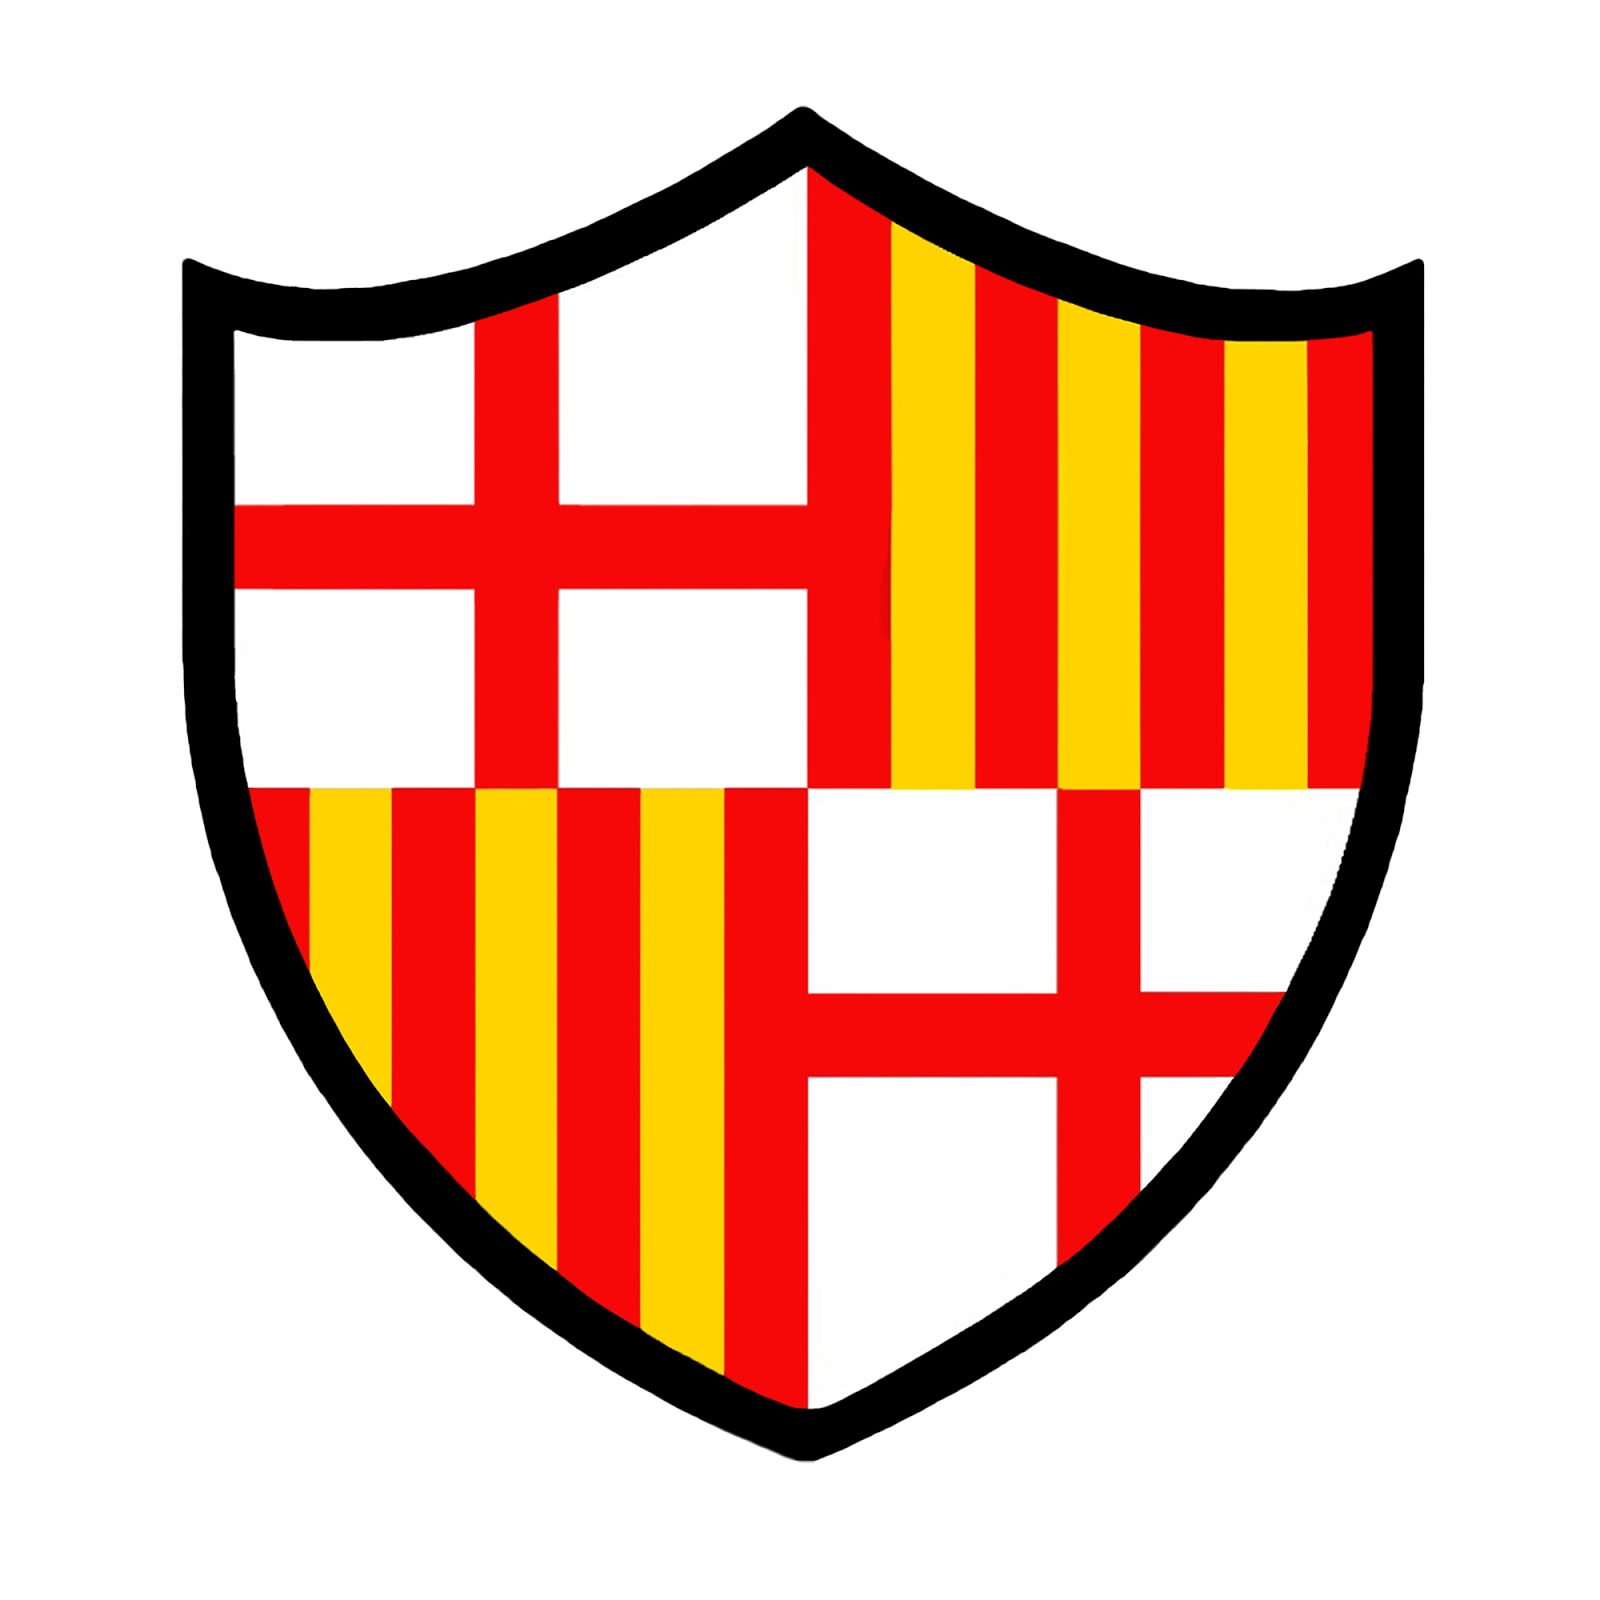 https://upload.wikimedia.org/wikipedia/commons/b/b6/Primer_Escudo_de_Barcelona_Sporting_Club_de_1925.jpg